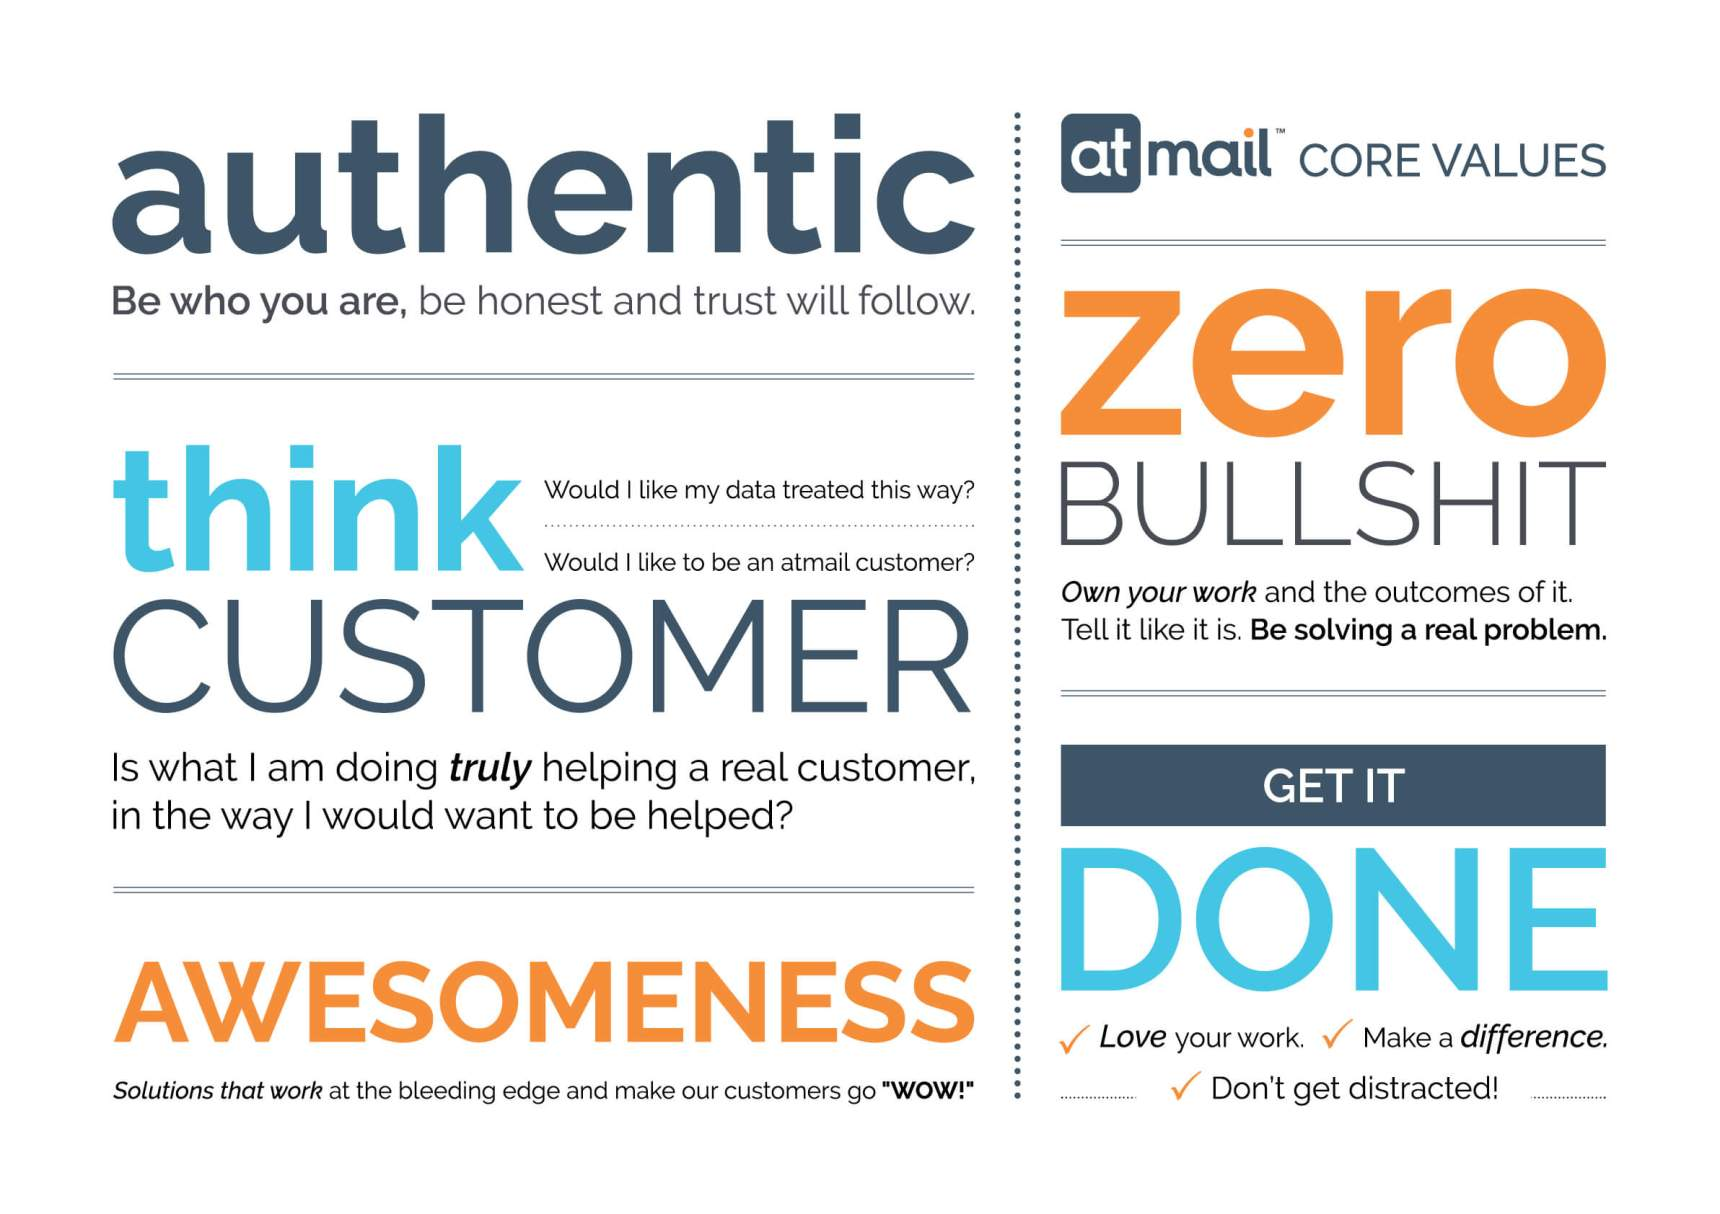 atmail core values poster, atmail values, atmail careers, atmail company values